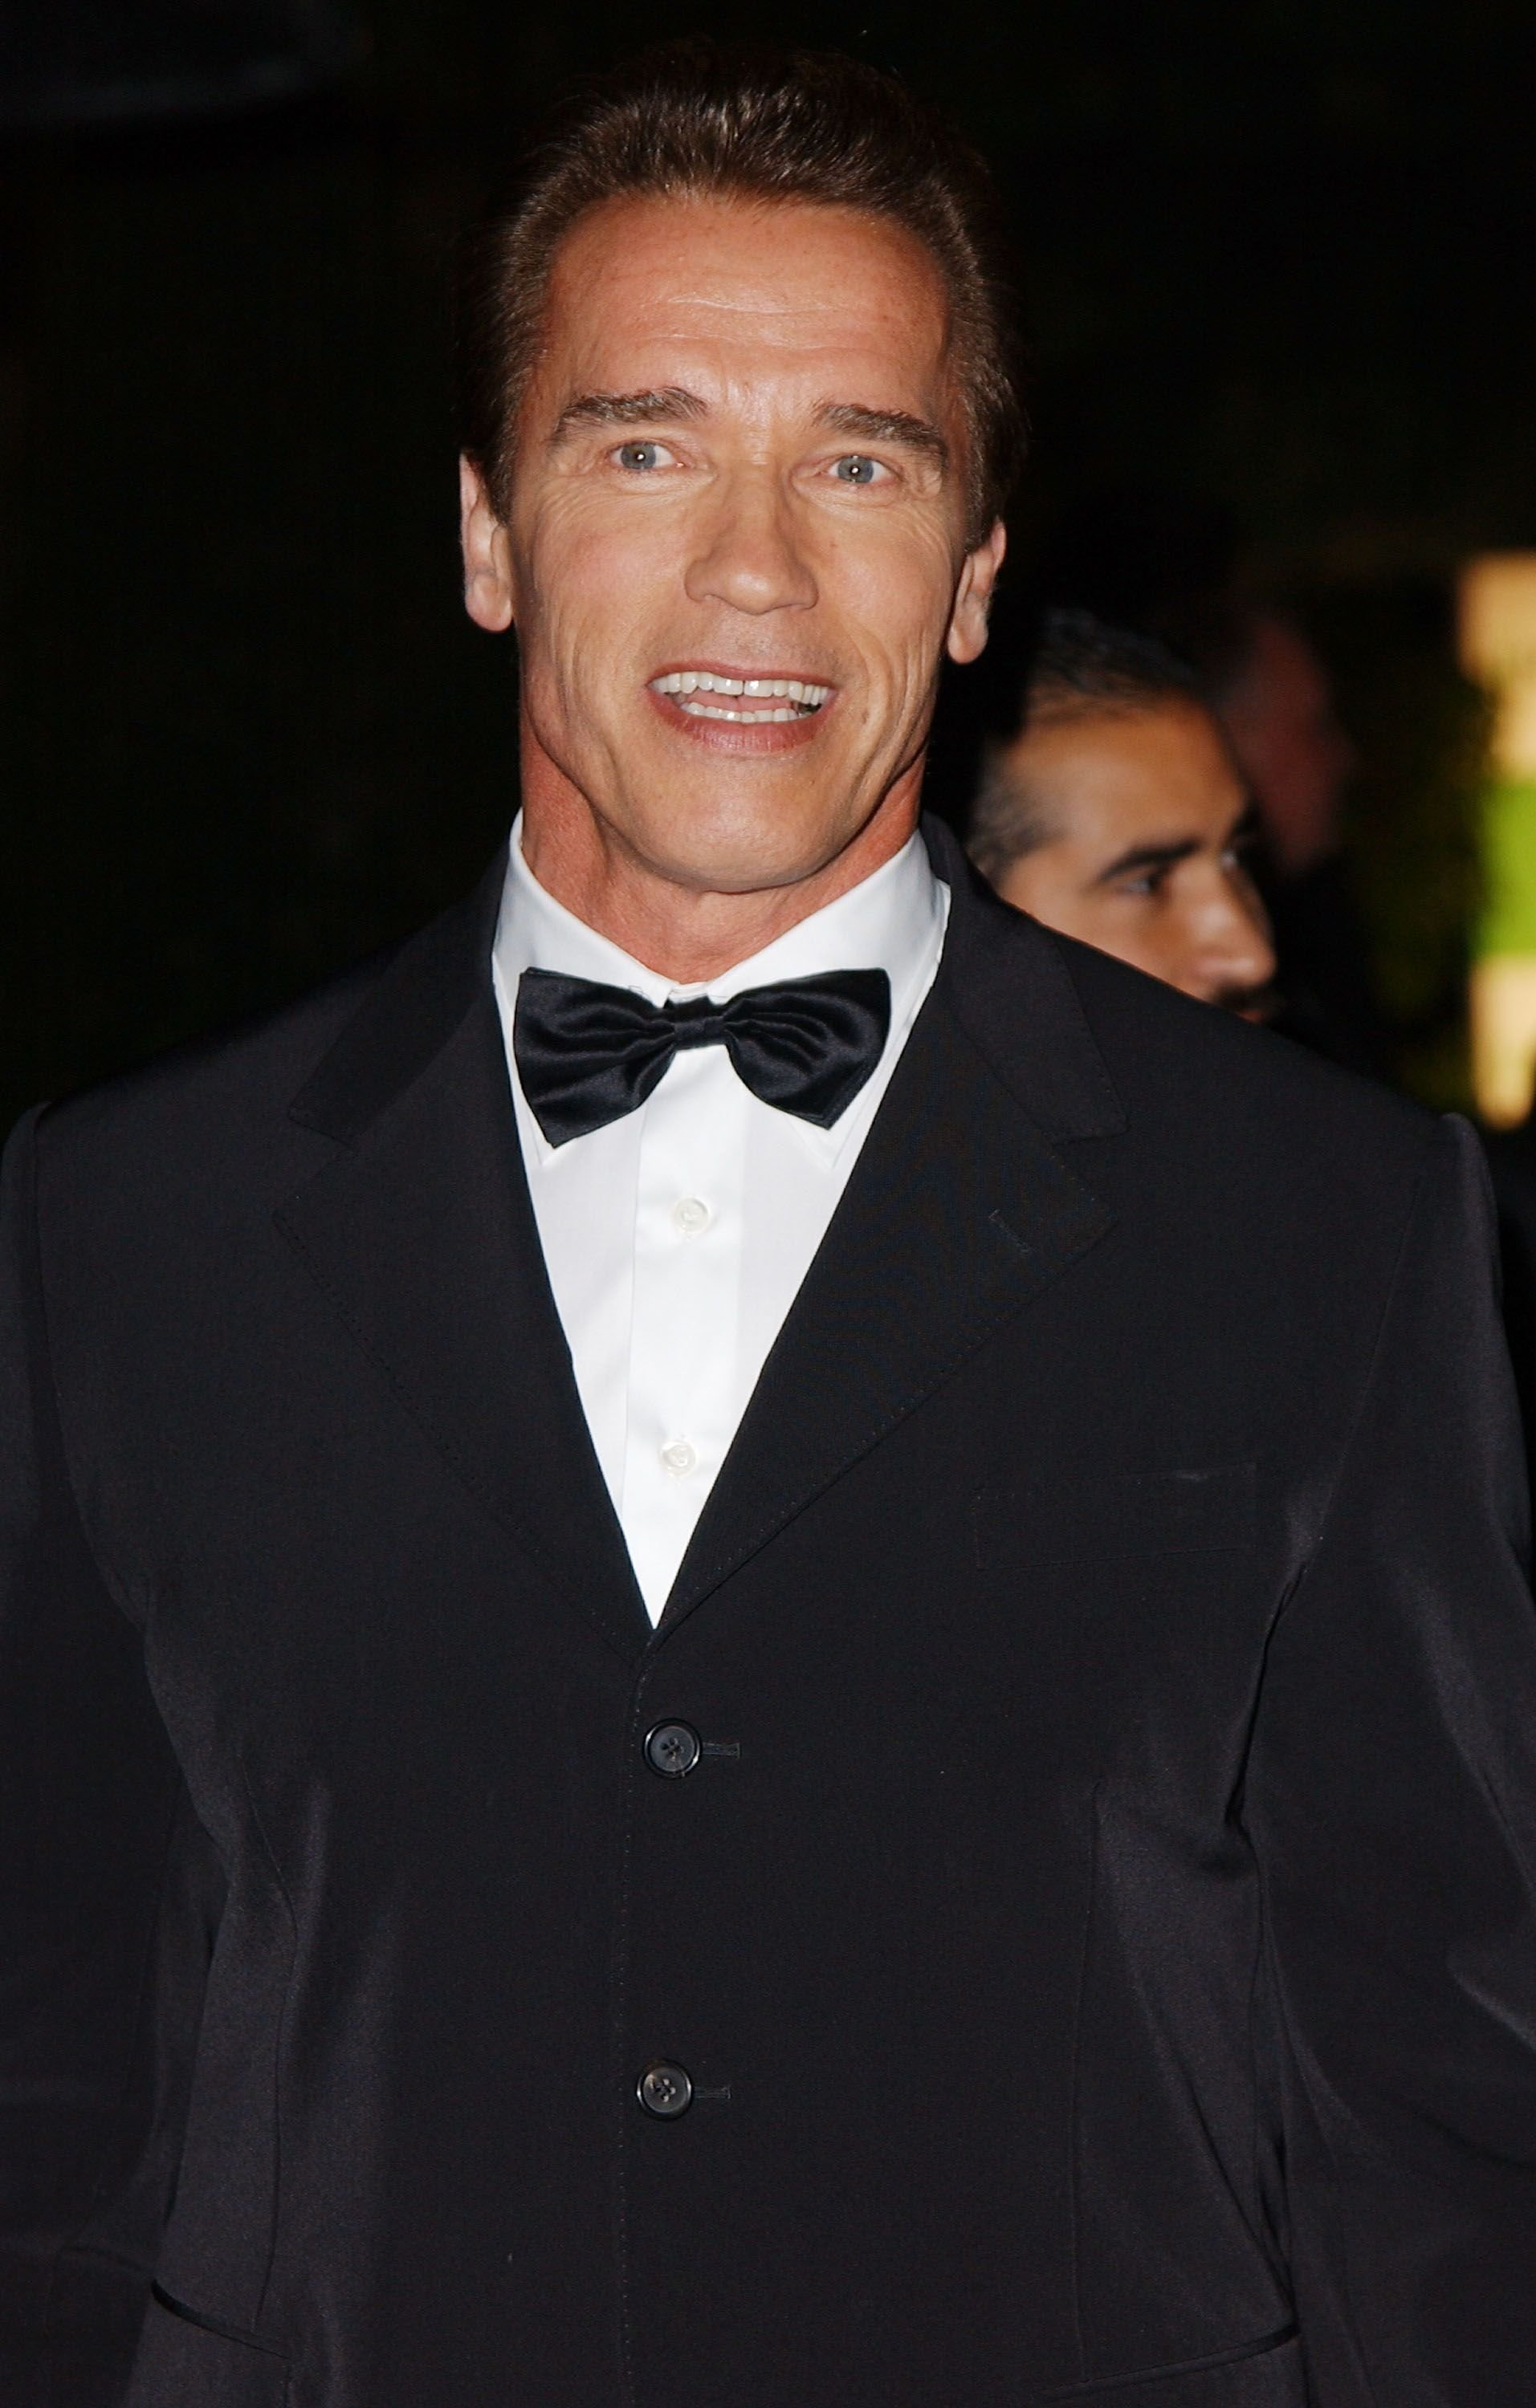 The famous Terminator Arnold Schwarzenegger / Getty Images